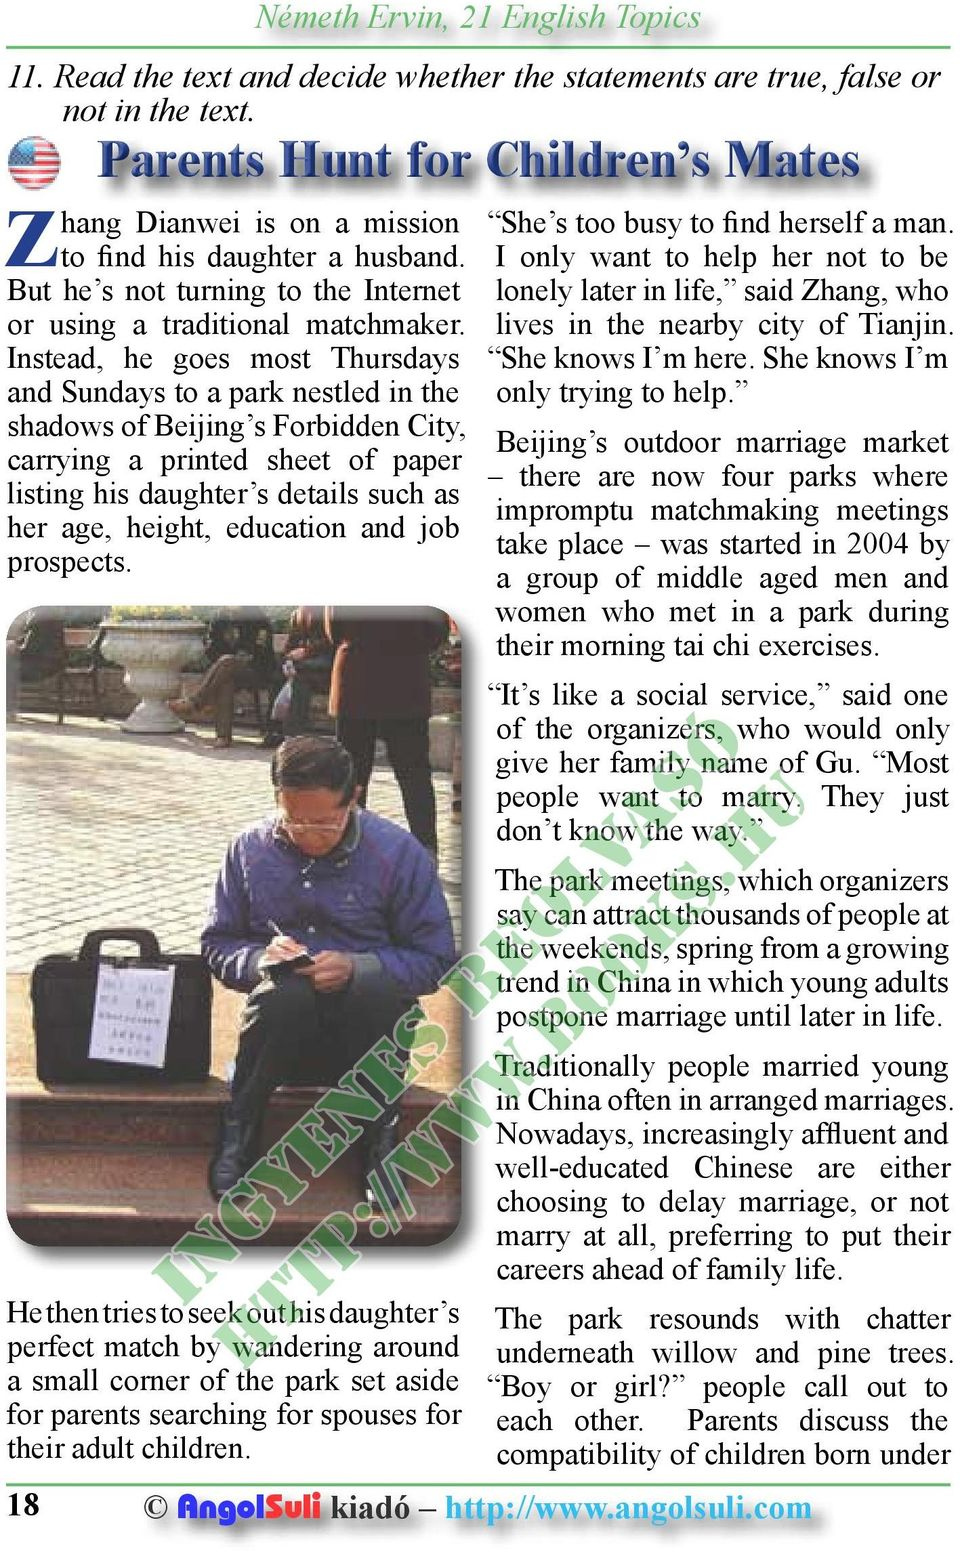 Instead, he goes most Thursdays and Sundays to a park nestled in the shadows of Beijing s Forbidden City, carrying a printed sheet of paper listing his daughter s details such as her age, height,